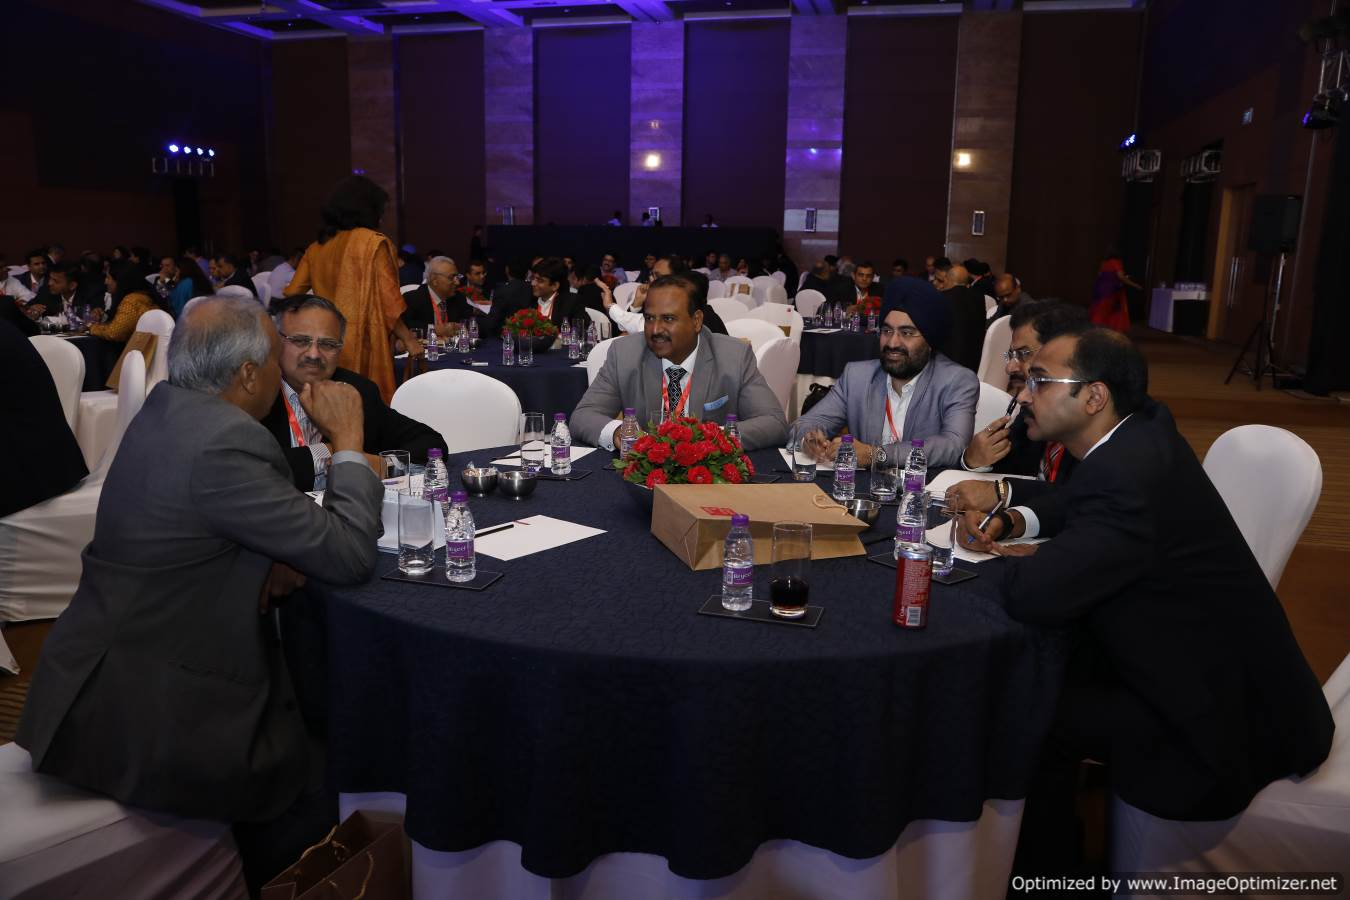 Business, Best Employers' Club, Great Place to Work in India, India's best workplaces